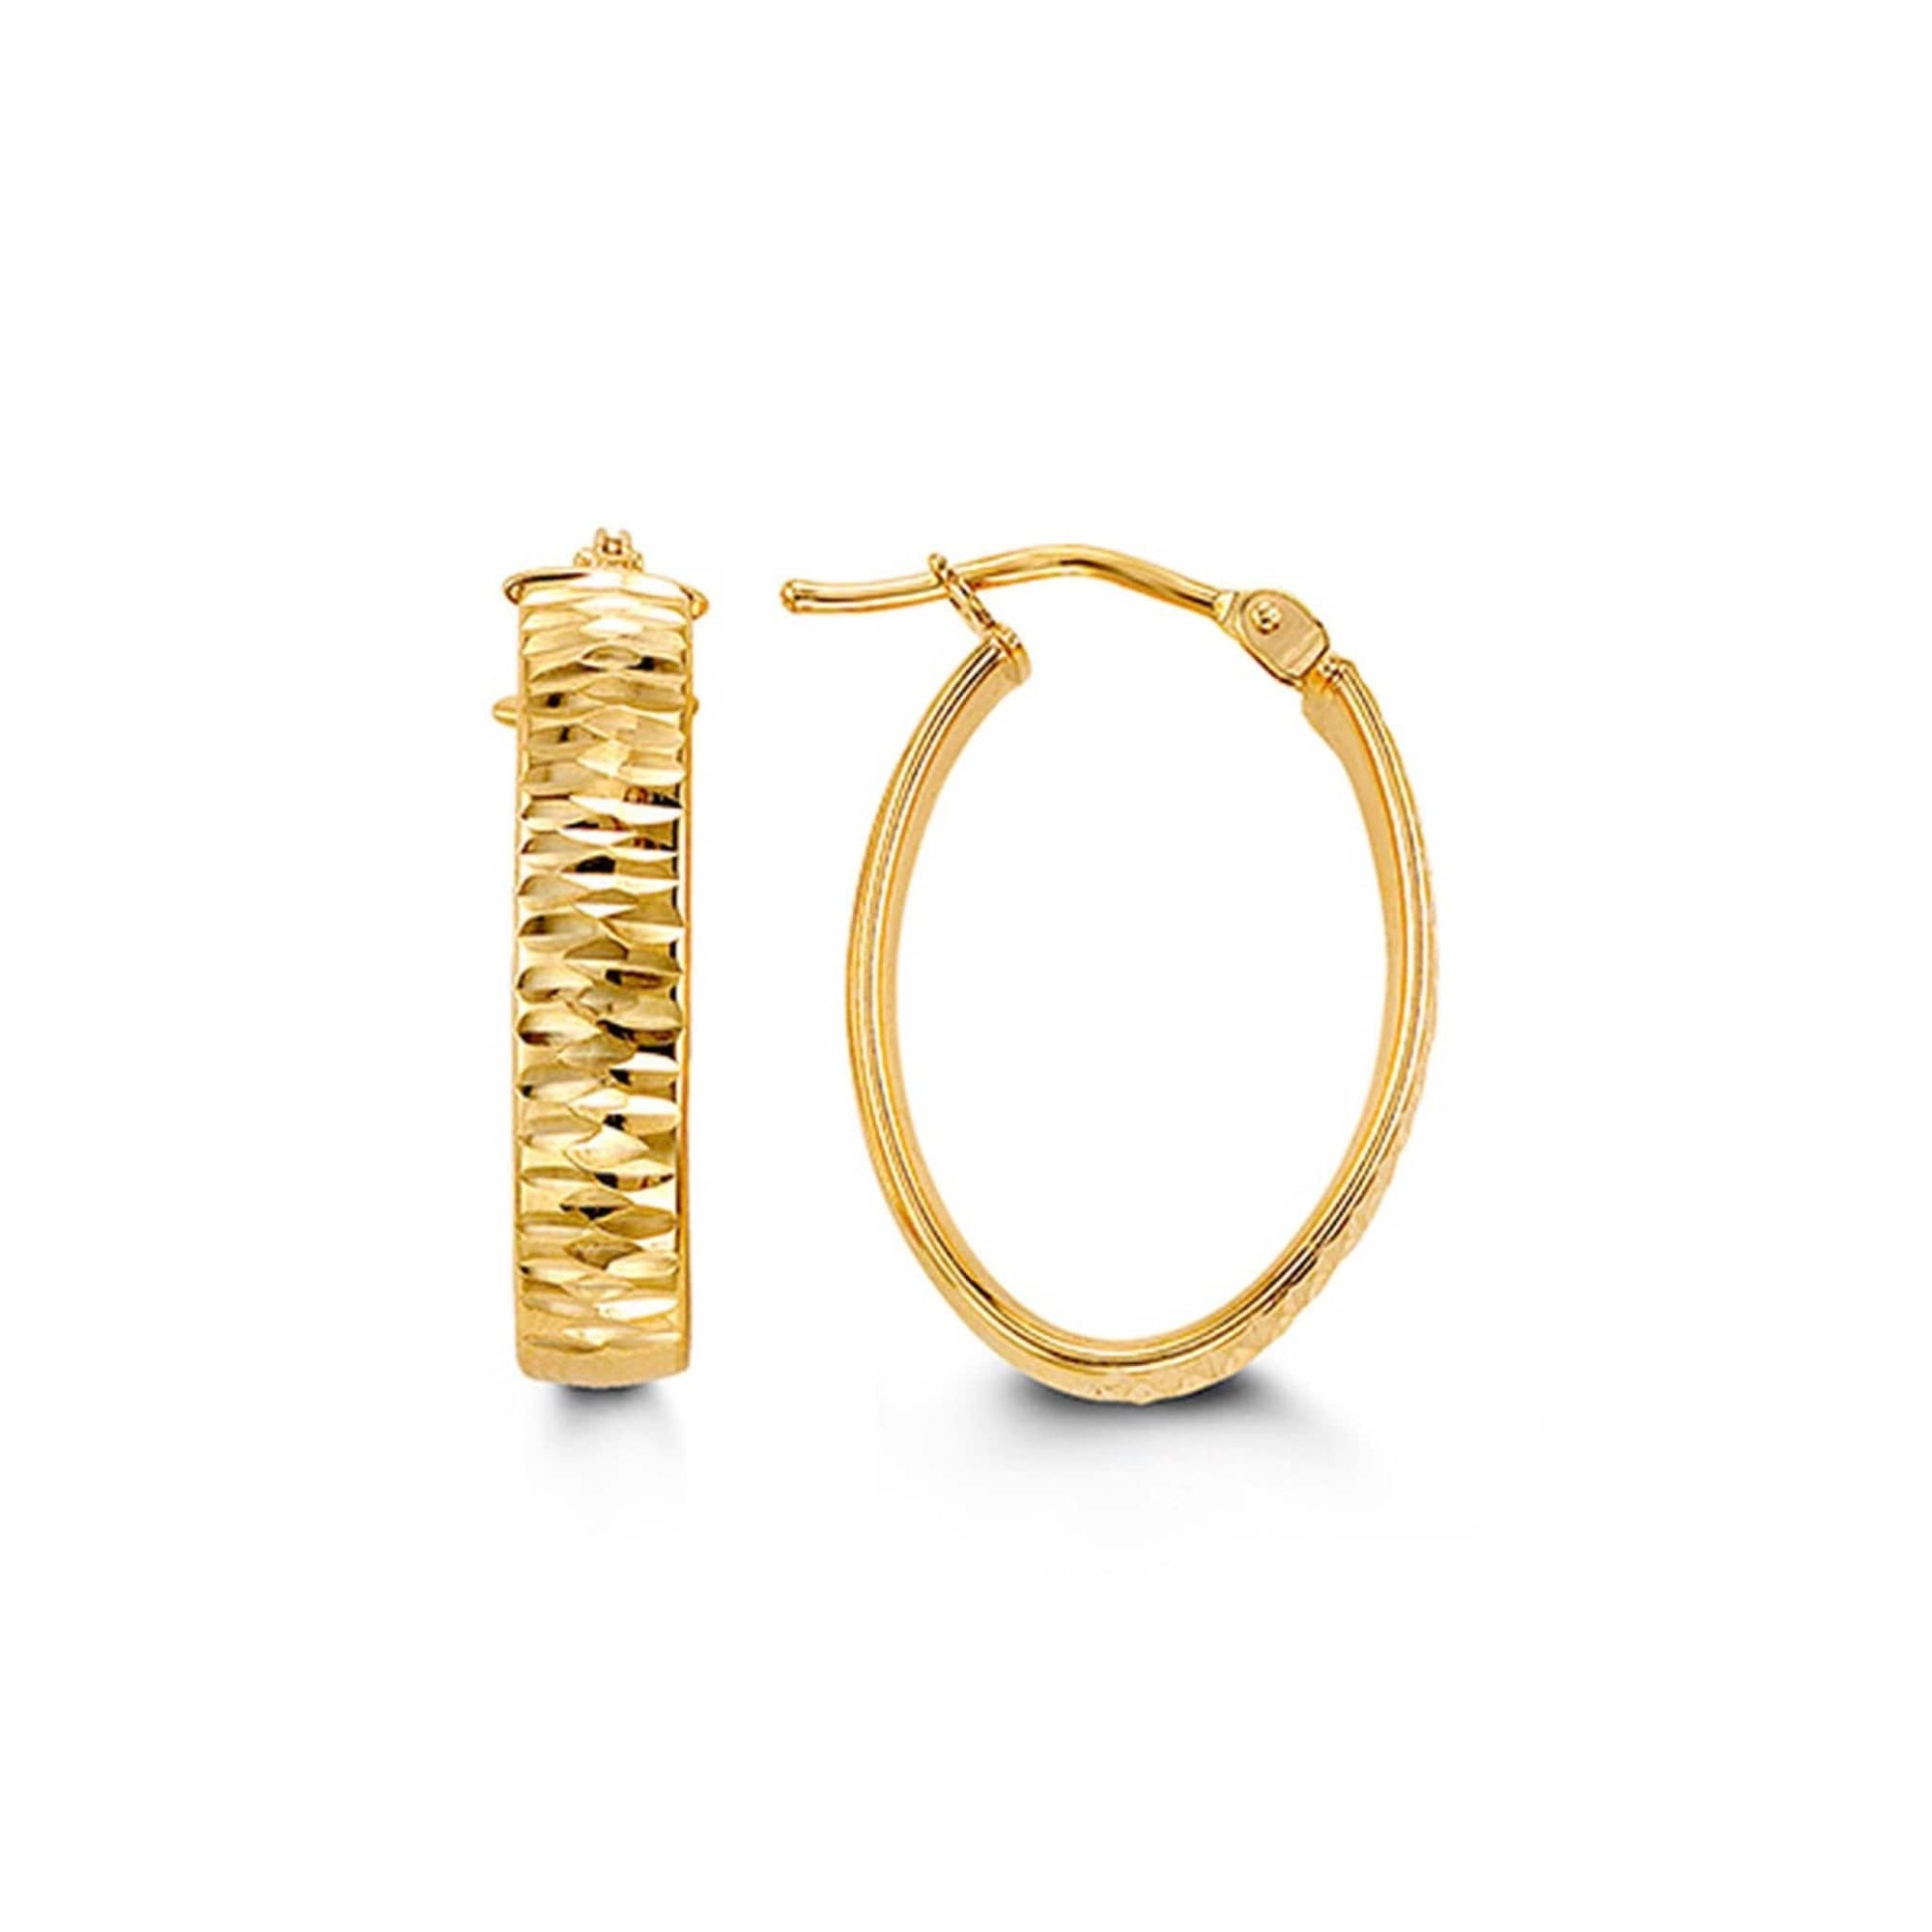 10K Yellow Gold Diamond-Cut Oval Hoop Earrings at Arman's Jewellers